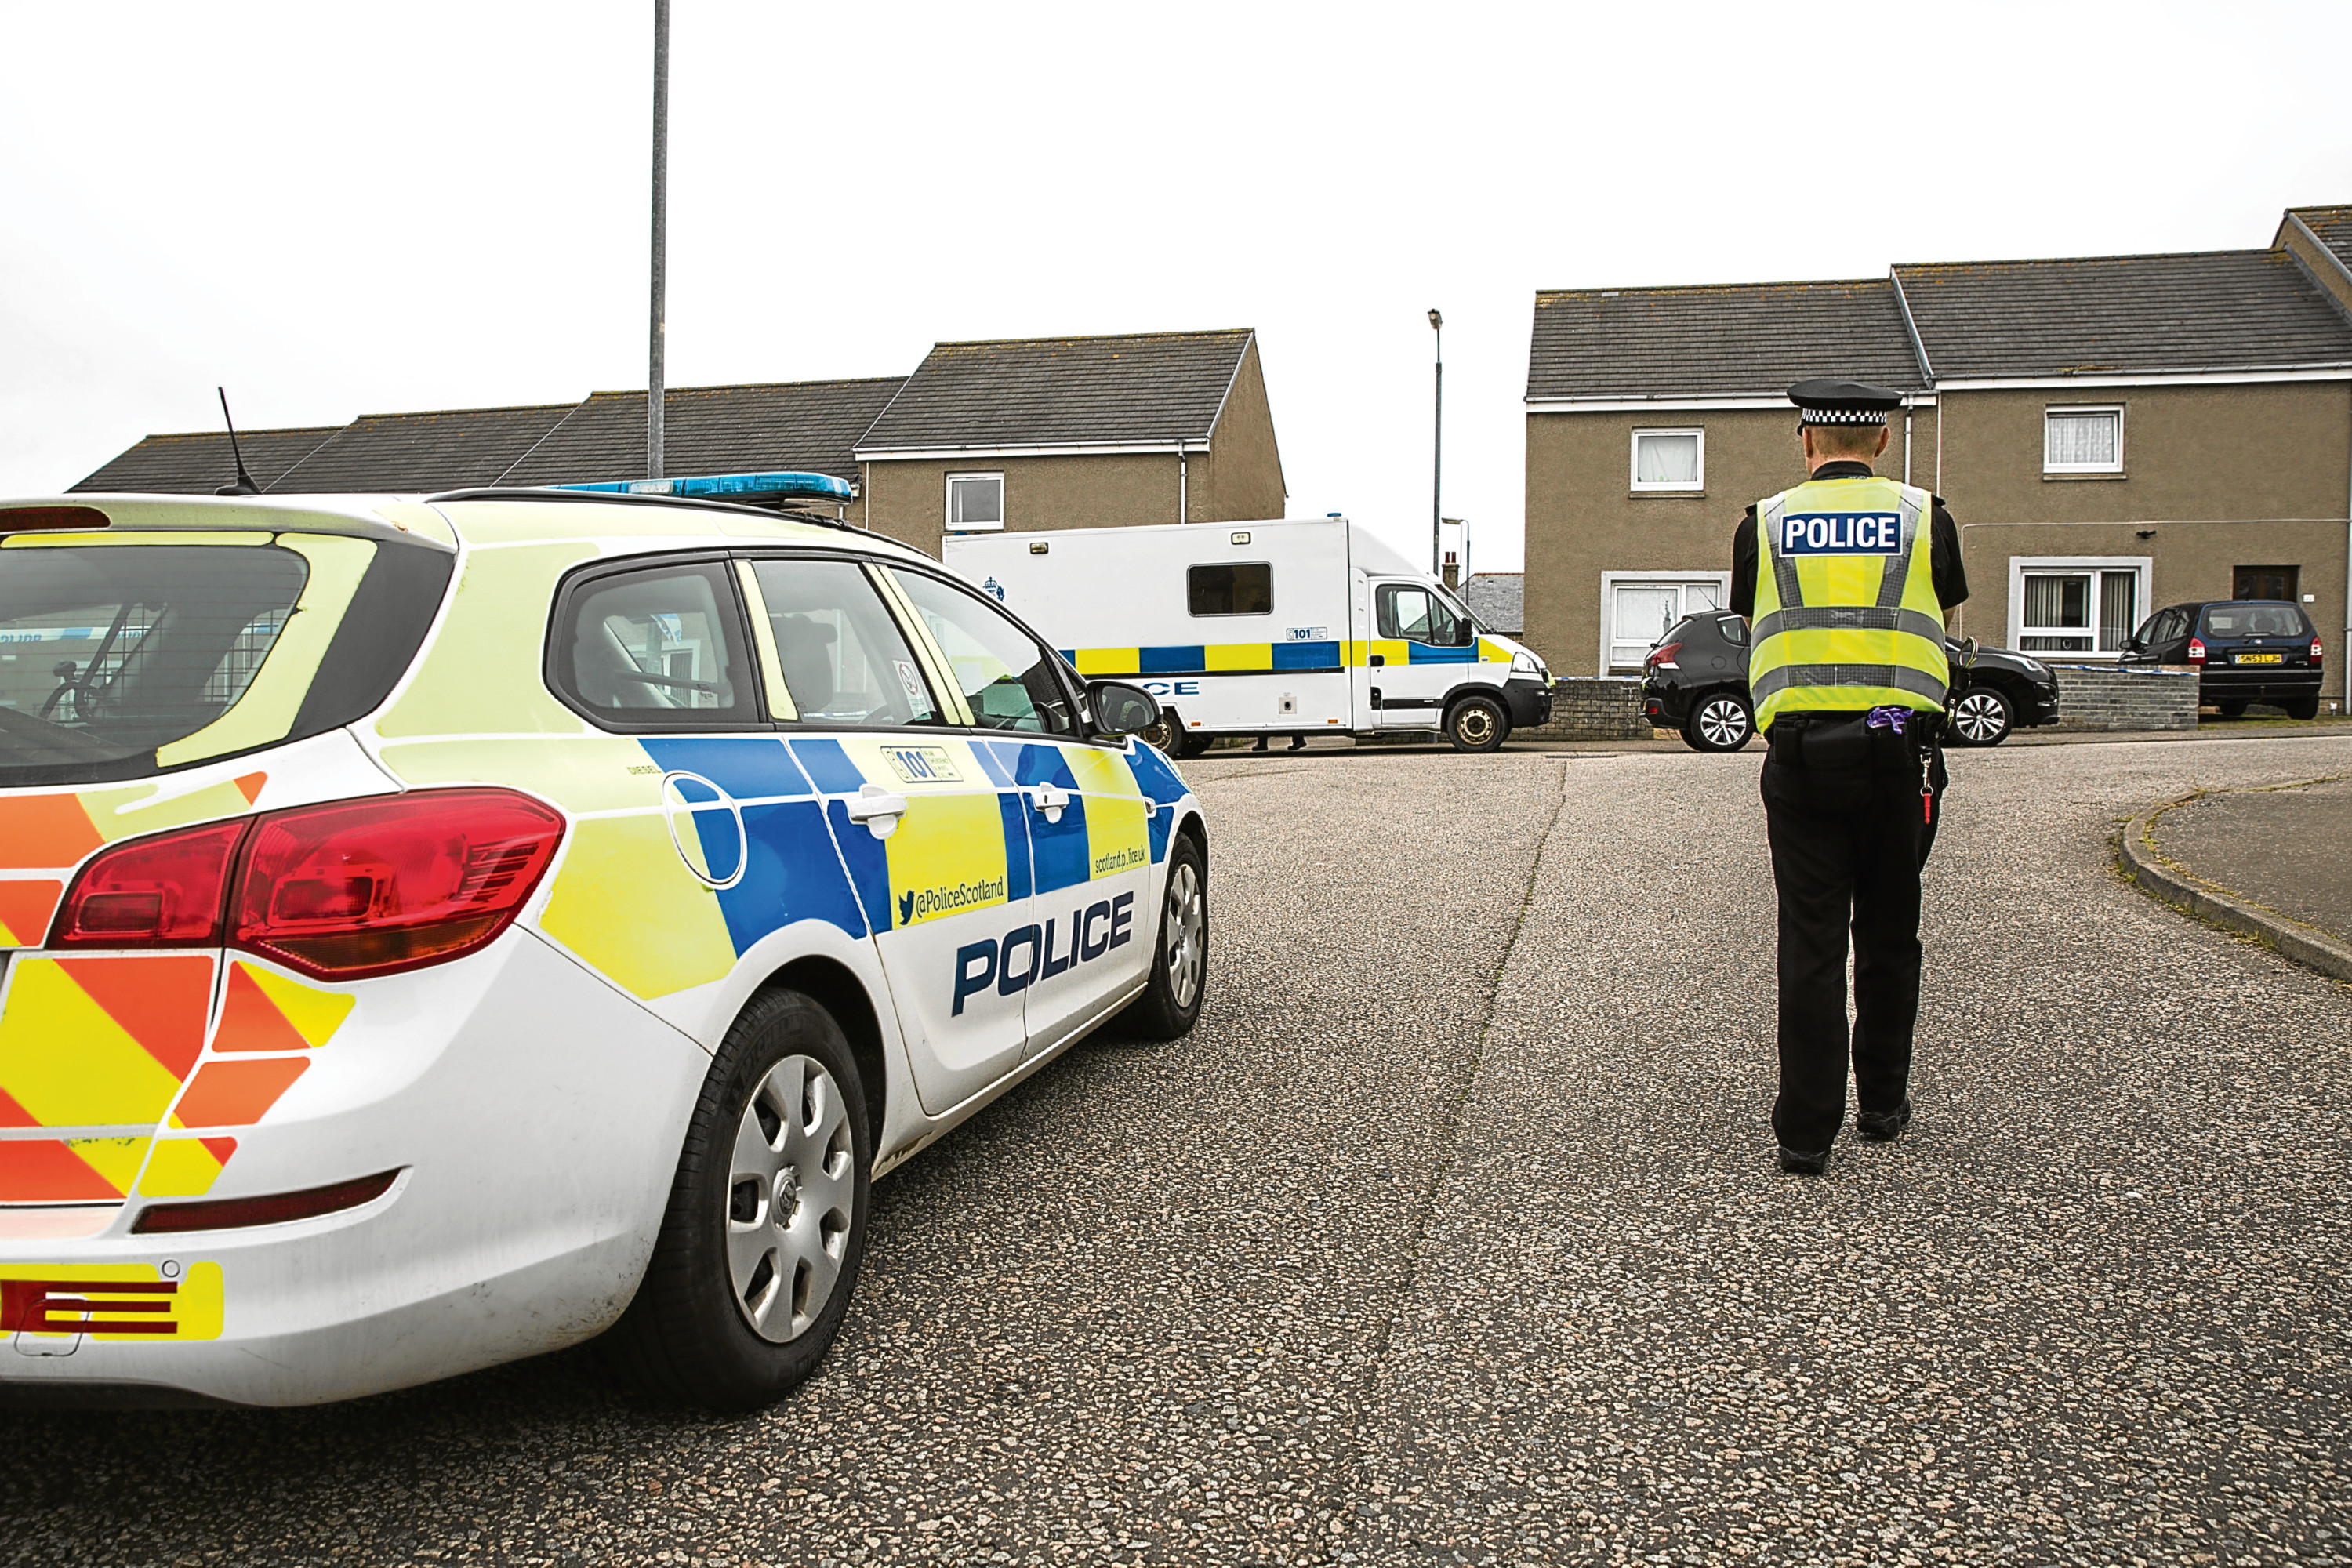 Police at Fernie Place in Fraserburgh